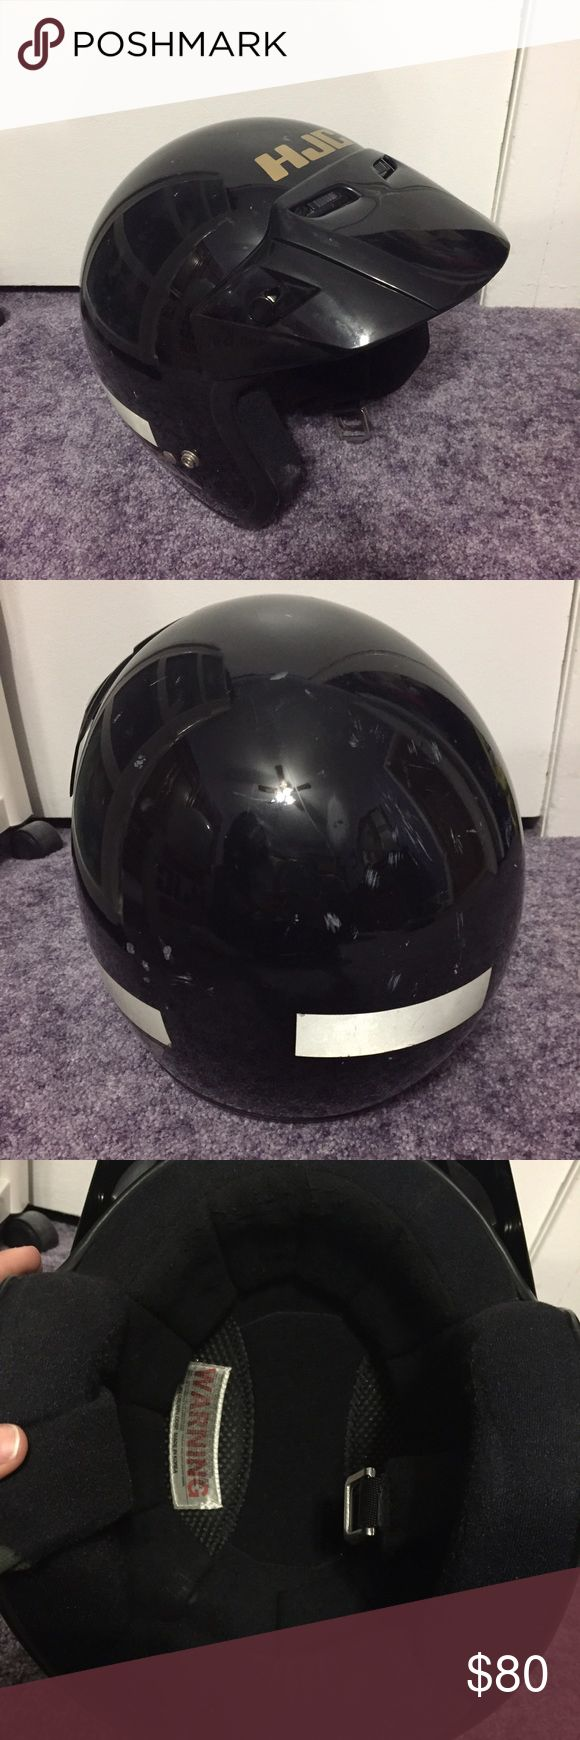 Motorcycle helmet with visor and shield Motorcycle helmet with visor and shield, size XL, shield Is brand new in package hjc Accessories